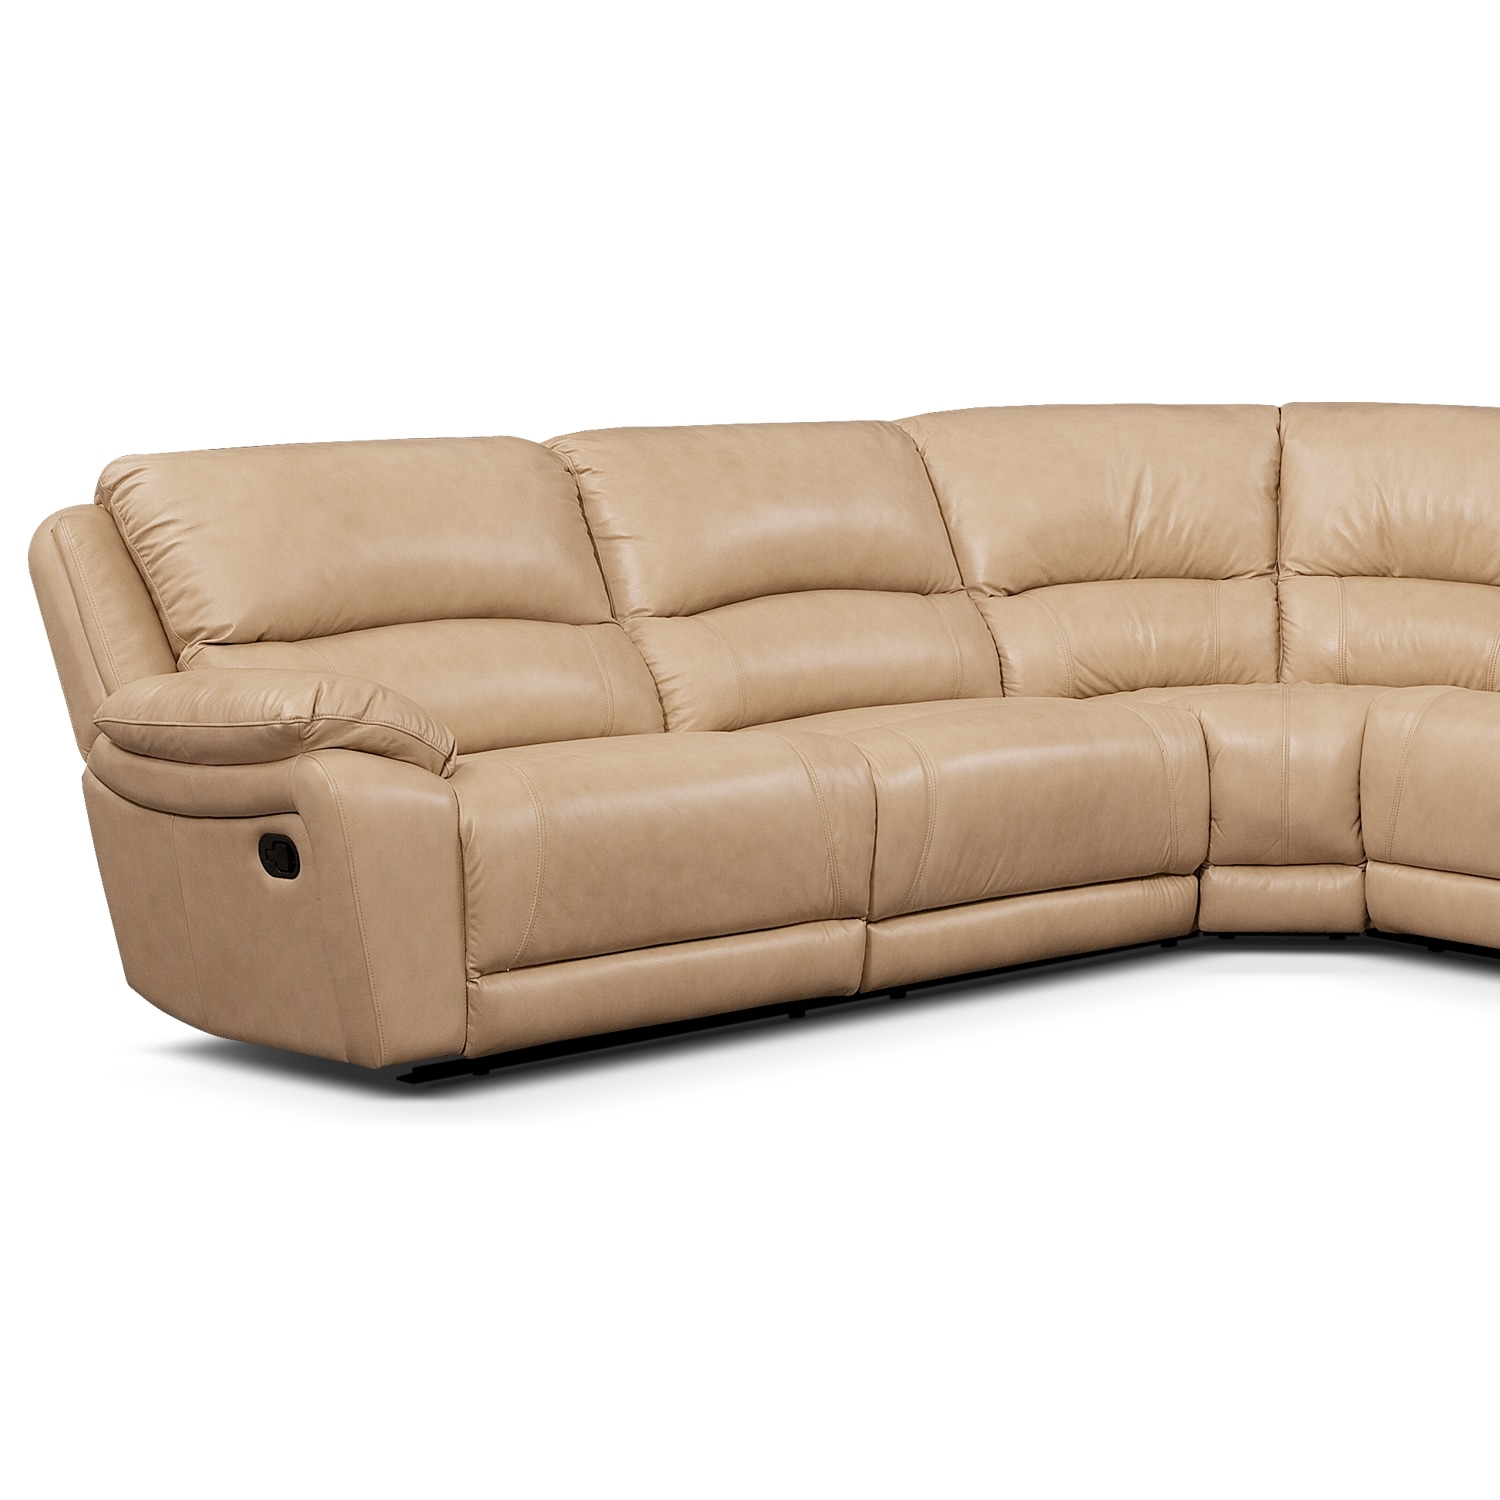 Coming soon wwwfurniturecom for Leather sectional sofa calgary